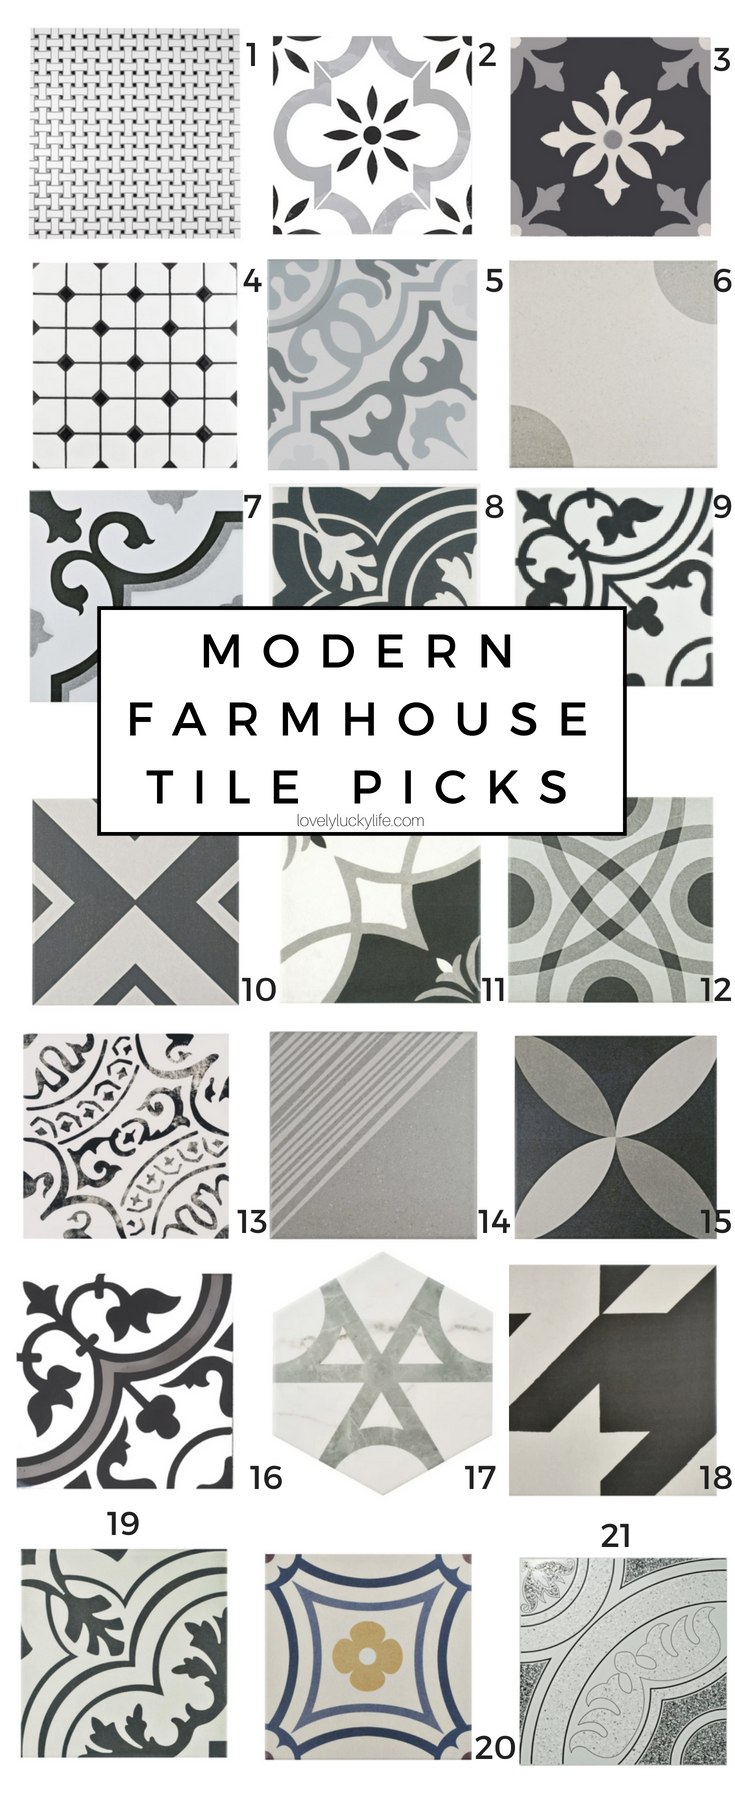 tile picks for the laundry room - modern farmhouse tile options... these are so fun for a little dash of fun! ceramic tiles for a touch of vintage farmhouse vibe